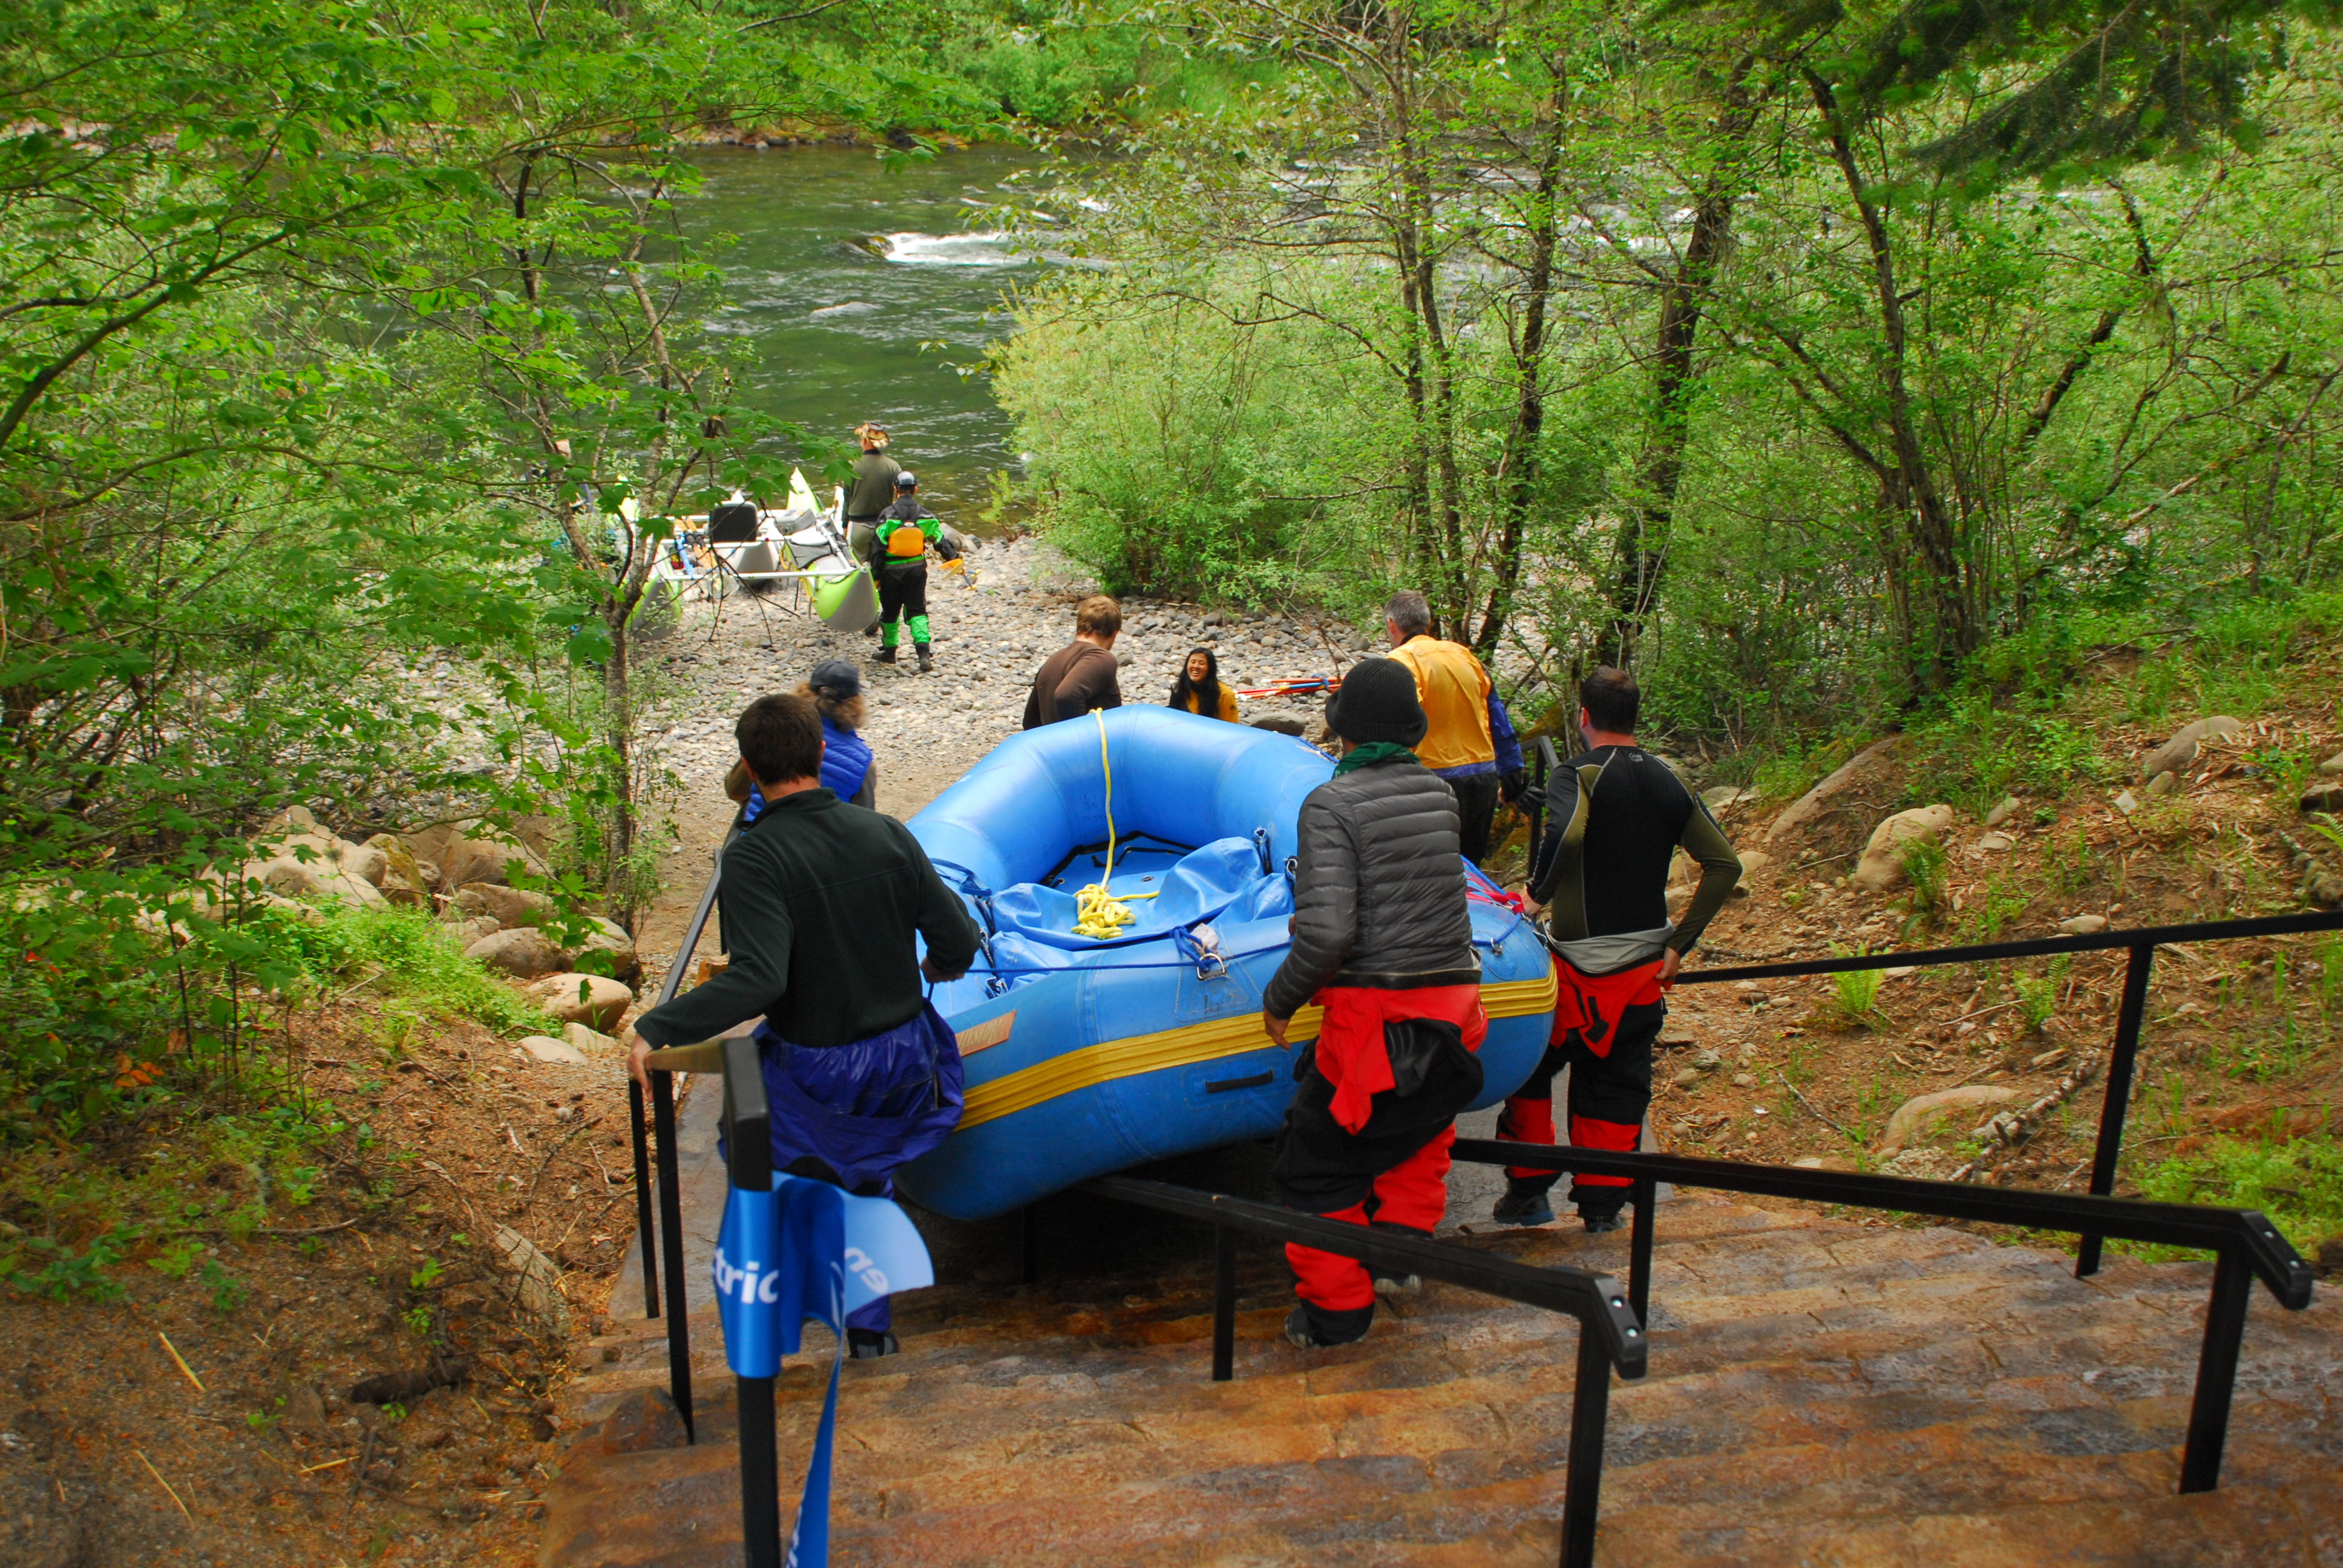 The two sets of rails at Hole in the Wall Launch on the Clackamas River in Oregon provide flexibility for inflatable launches.